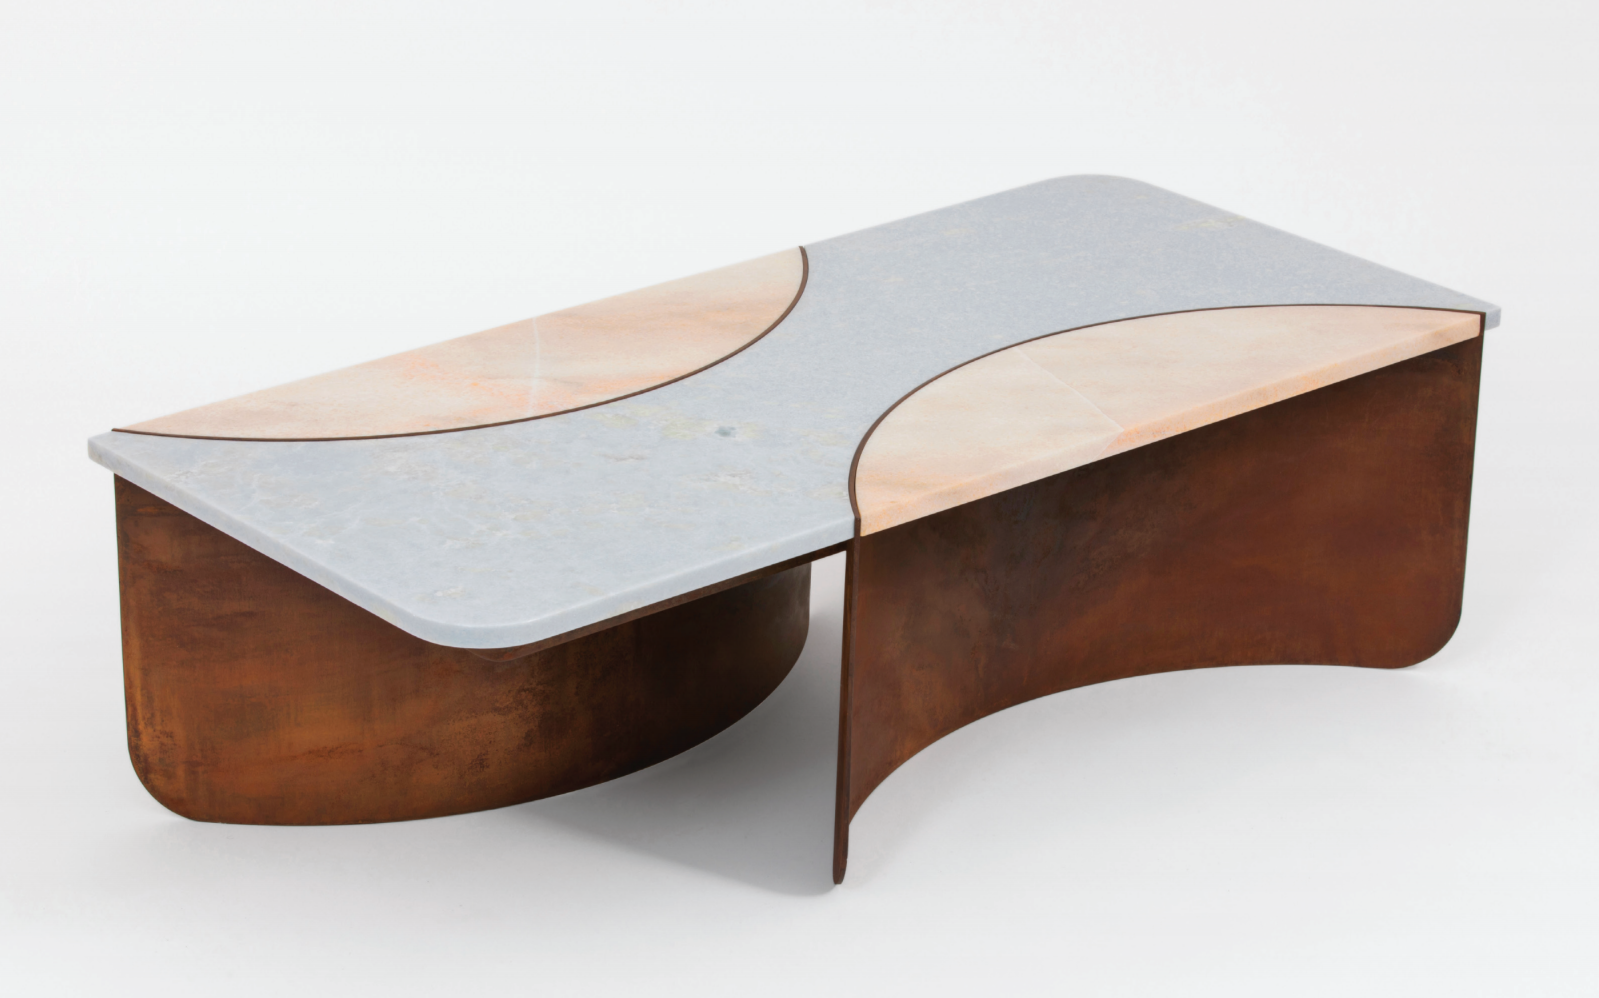 - Crescent Table2018Steel with a red oxide patinaThree-part polished marble top22 x 49 x 15 inches